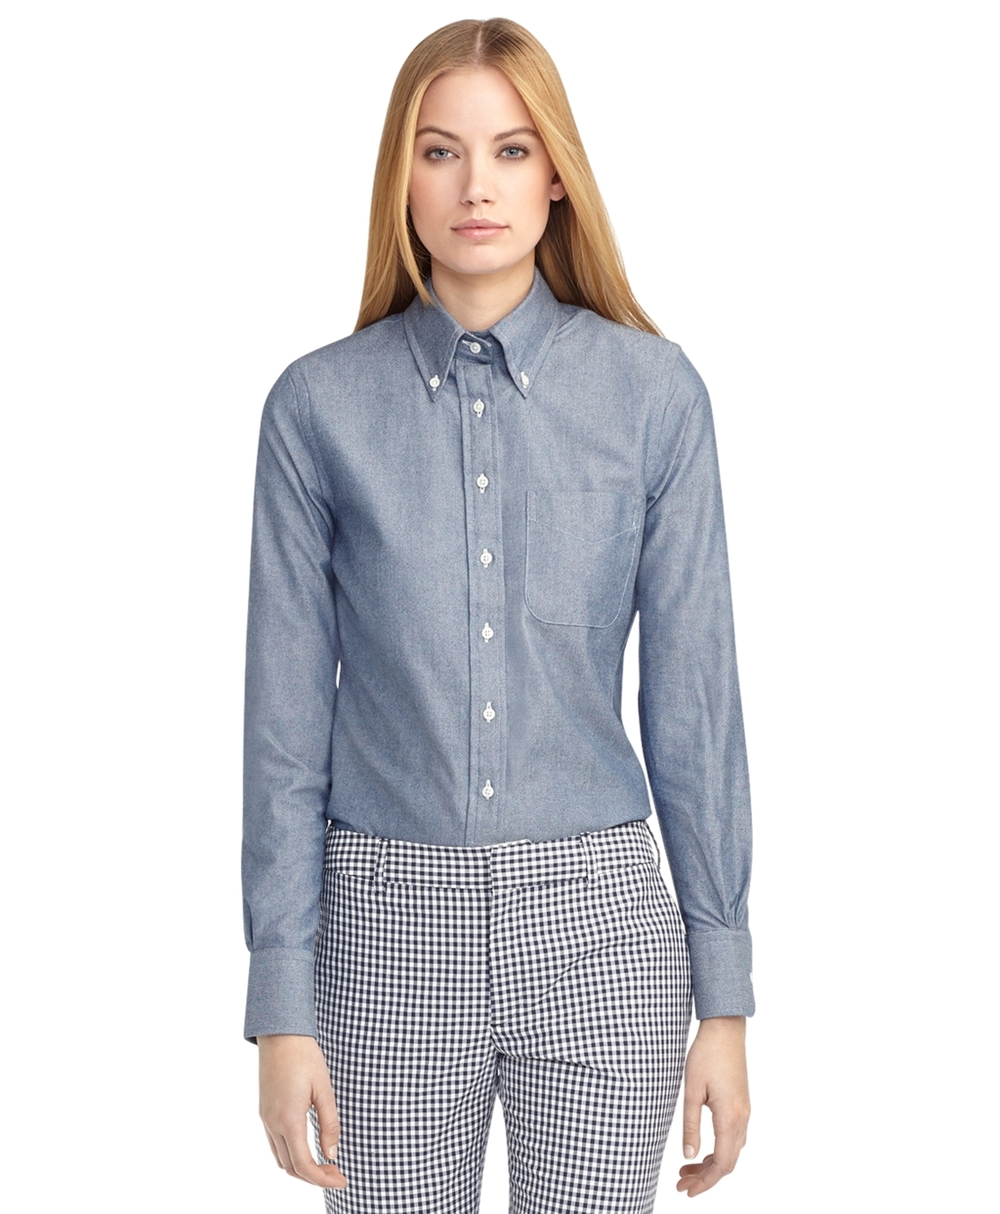 Shop for womens collared shirts online at Target. Free shipping on purchases over $35 and save 5% every day with your Target REDcard.